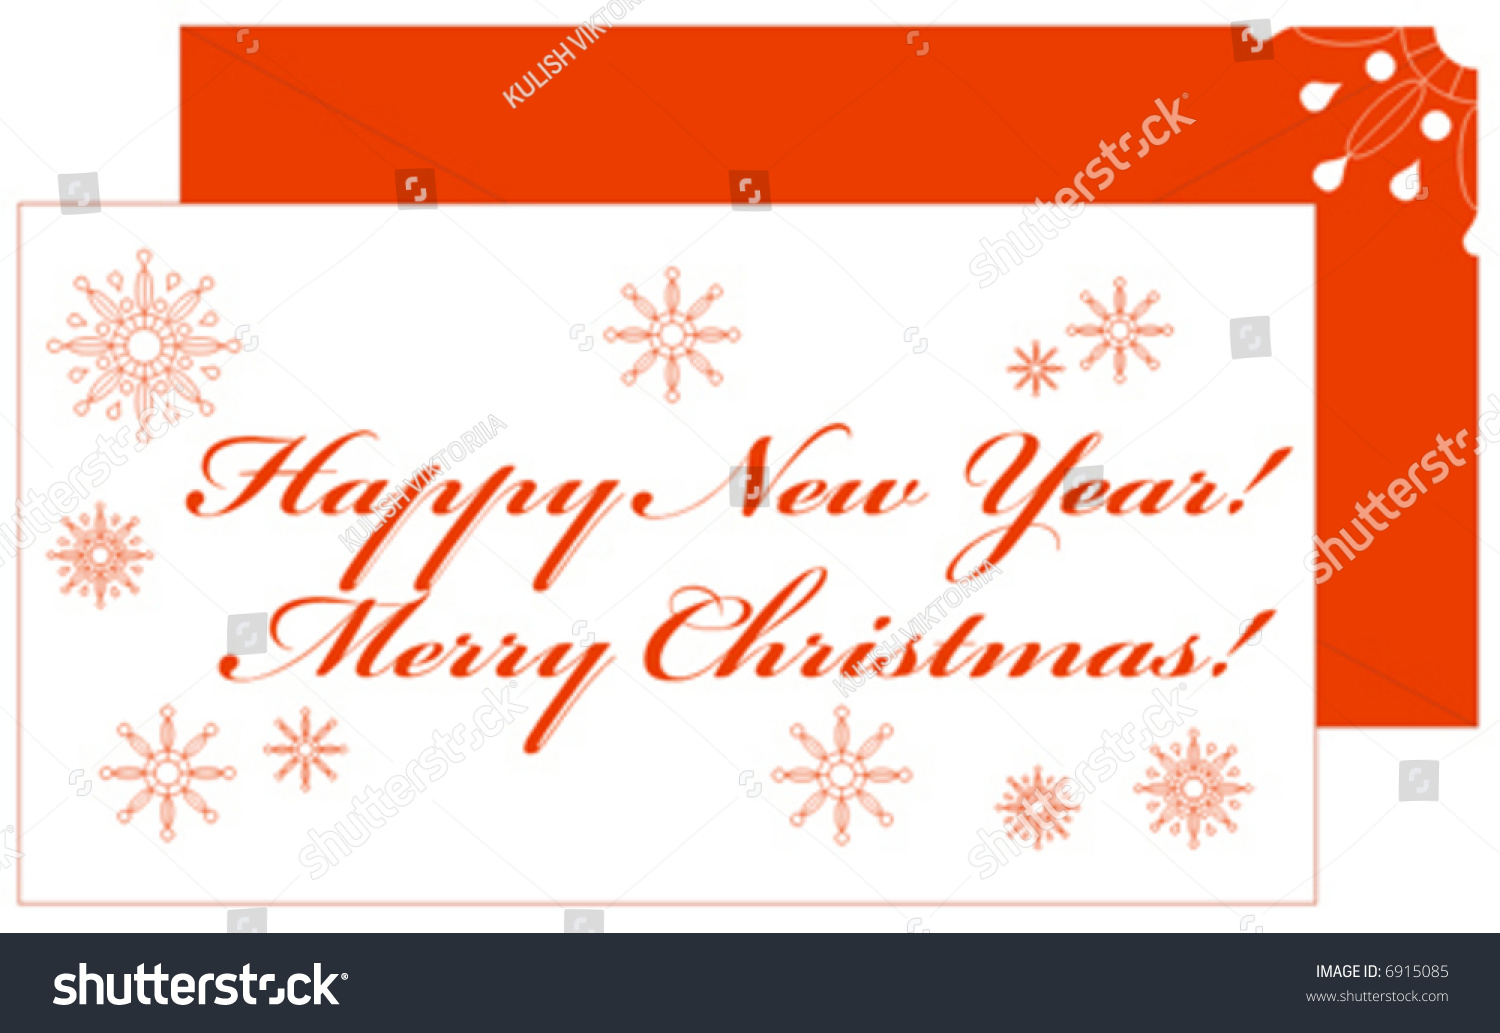 vector congratulatory new year postal card